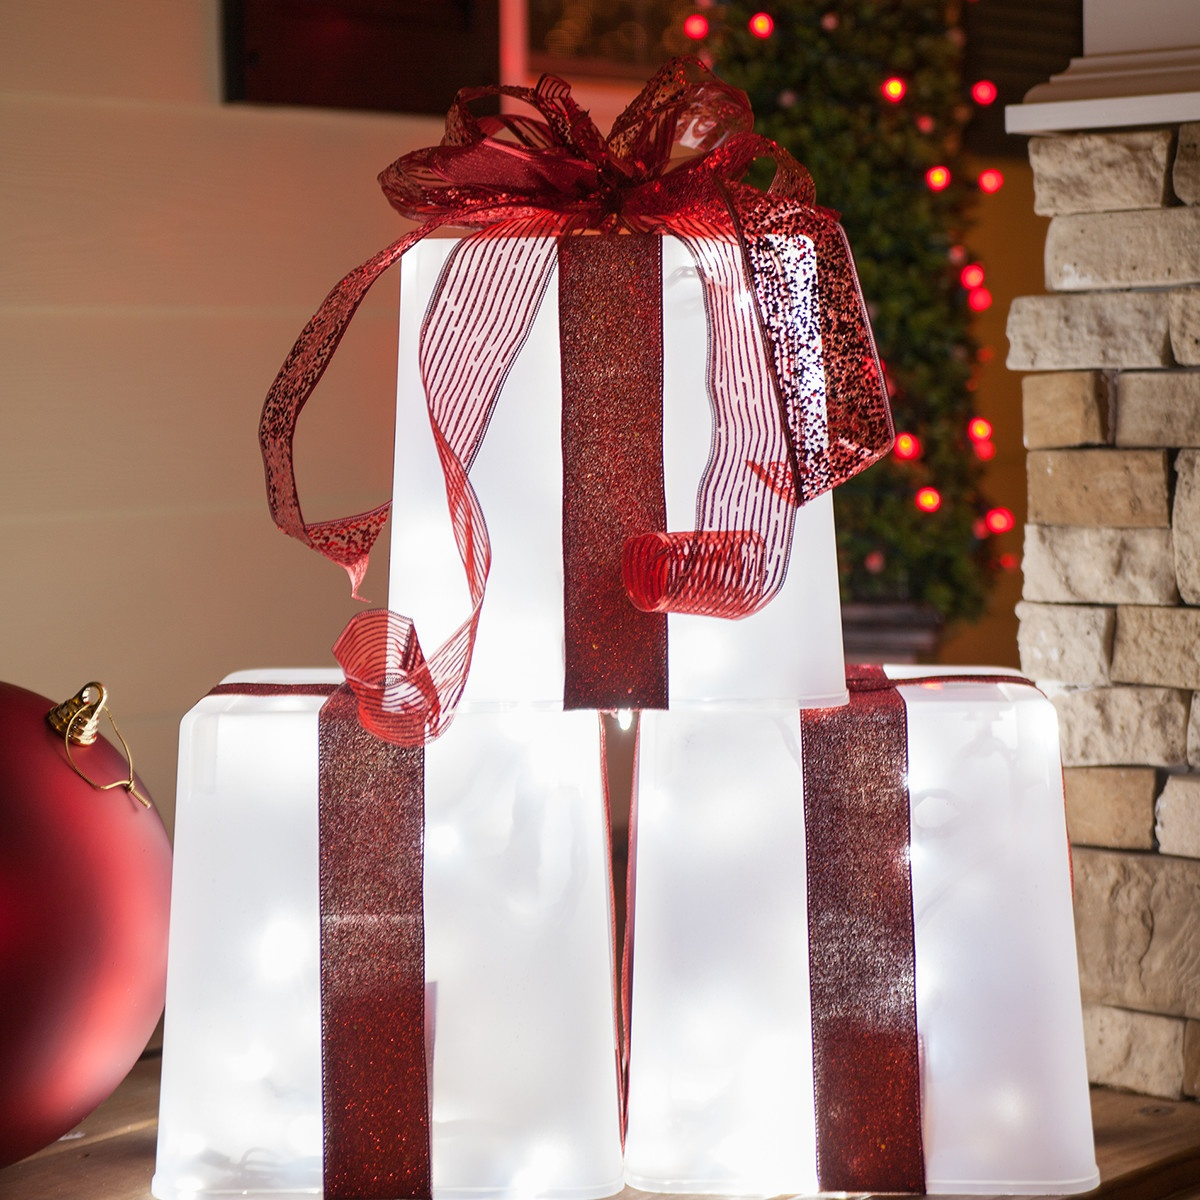 Create DIY lighted gift boxes using plastic containers, string lights and Christmas ribbon.